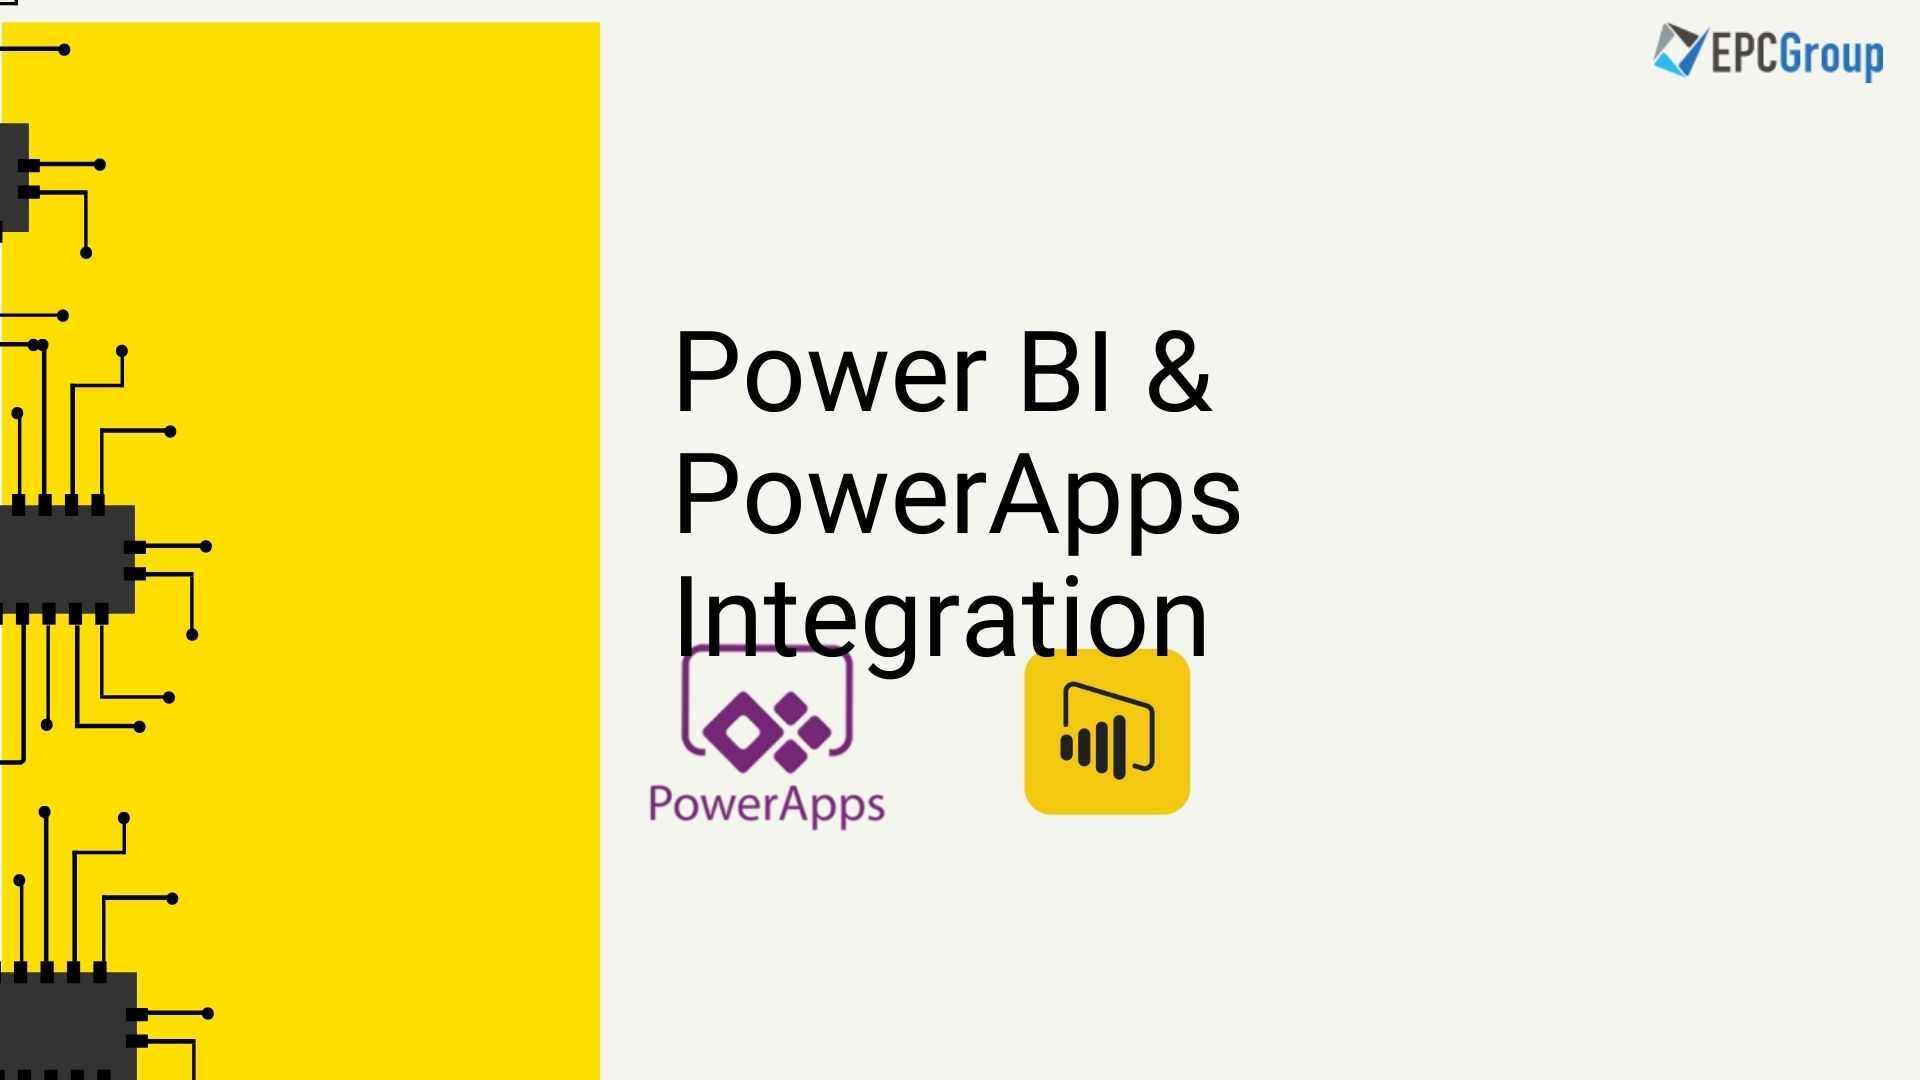 How to Achieve Seamless Power BI Integration with PowerApps - thumb image